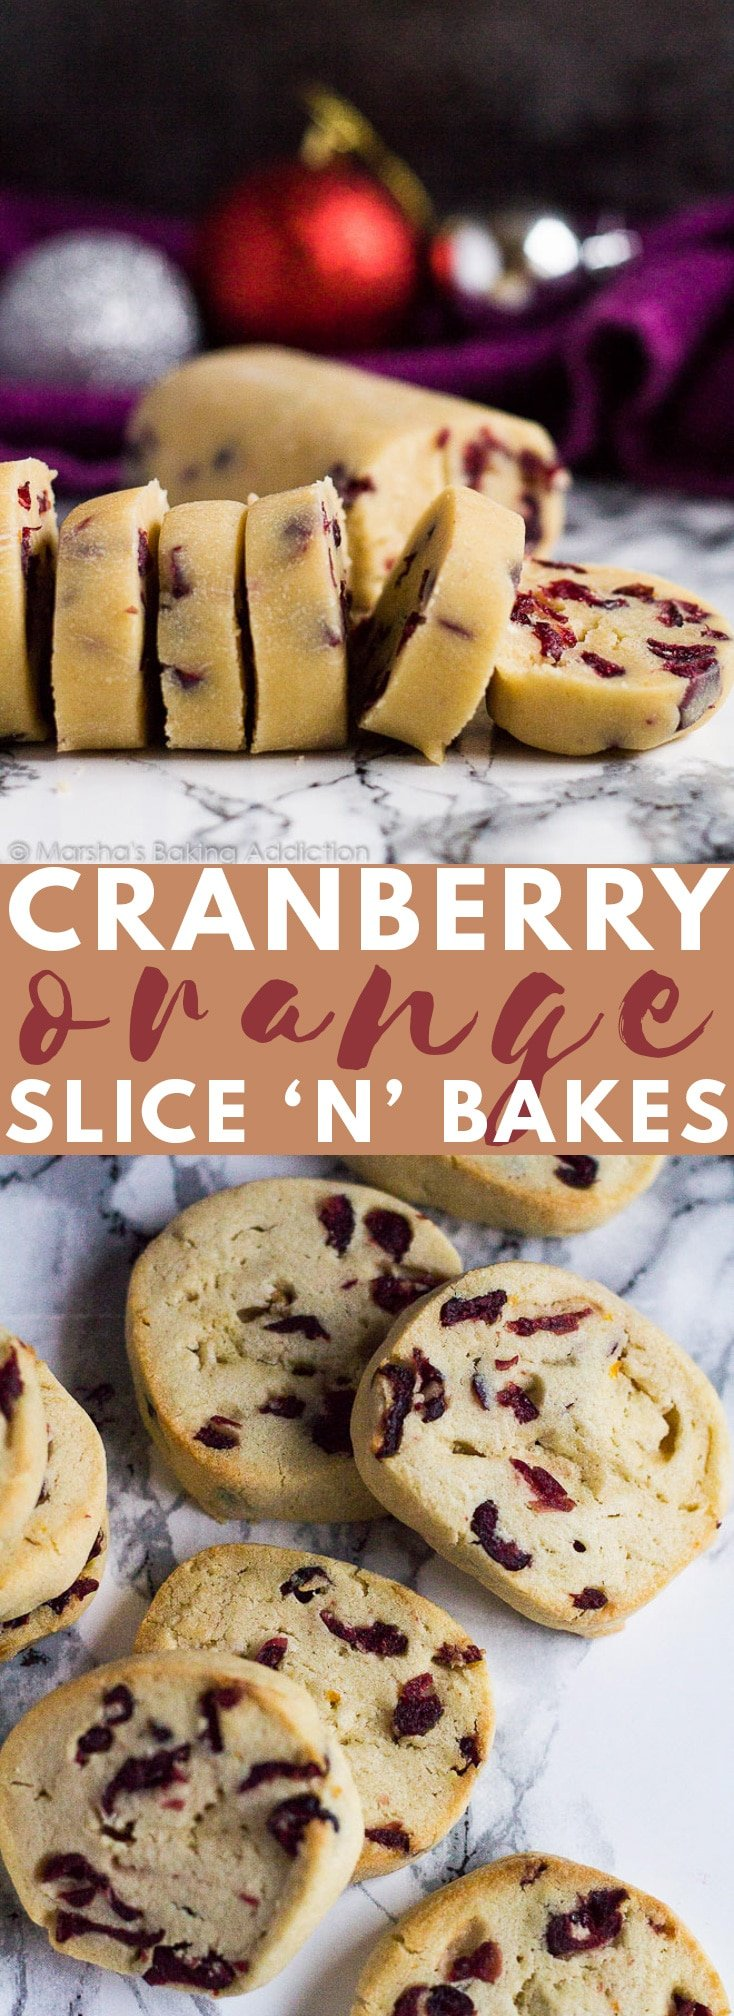 Cranberry Orange Slice 'n' Bake Cookies – Deliciously soft and thick, melt-in-your-mouth orange-infused cookies studded with sweet dried cranberries!